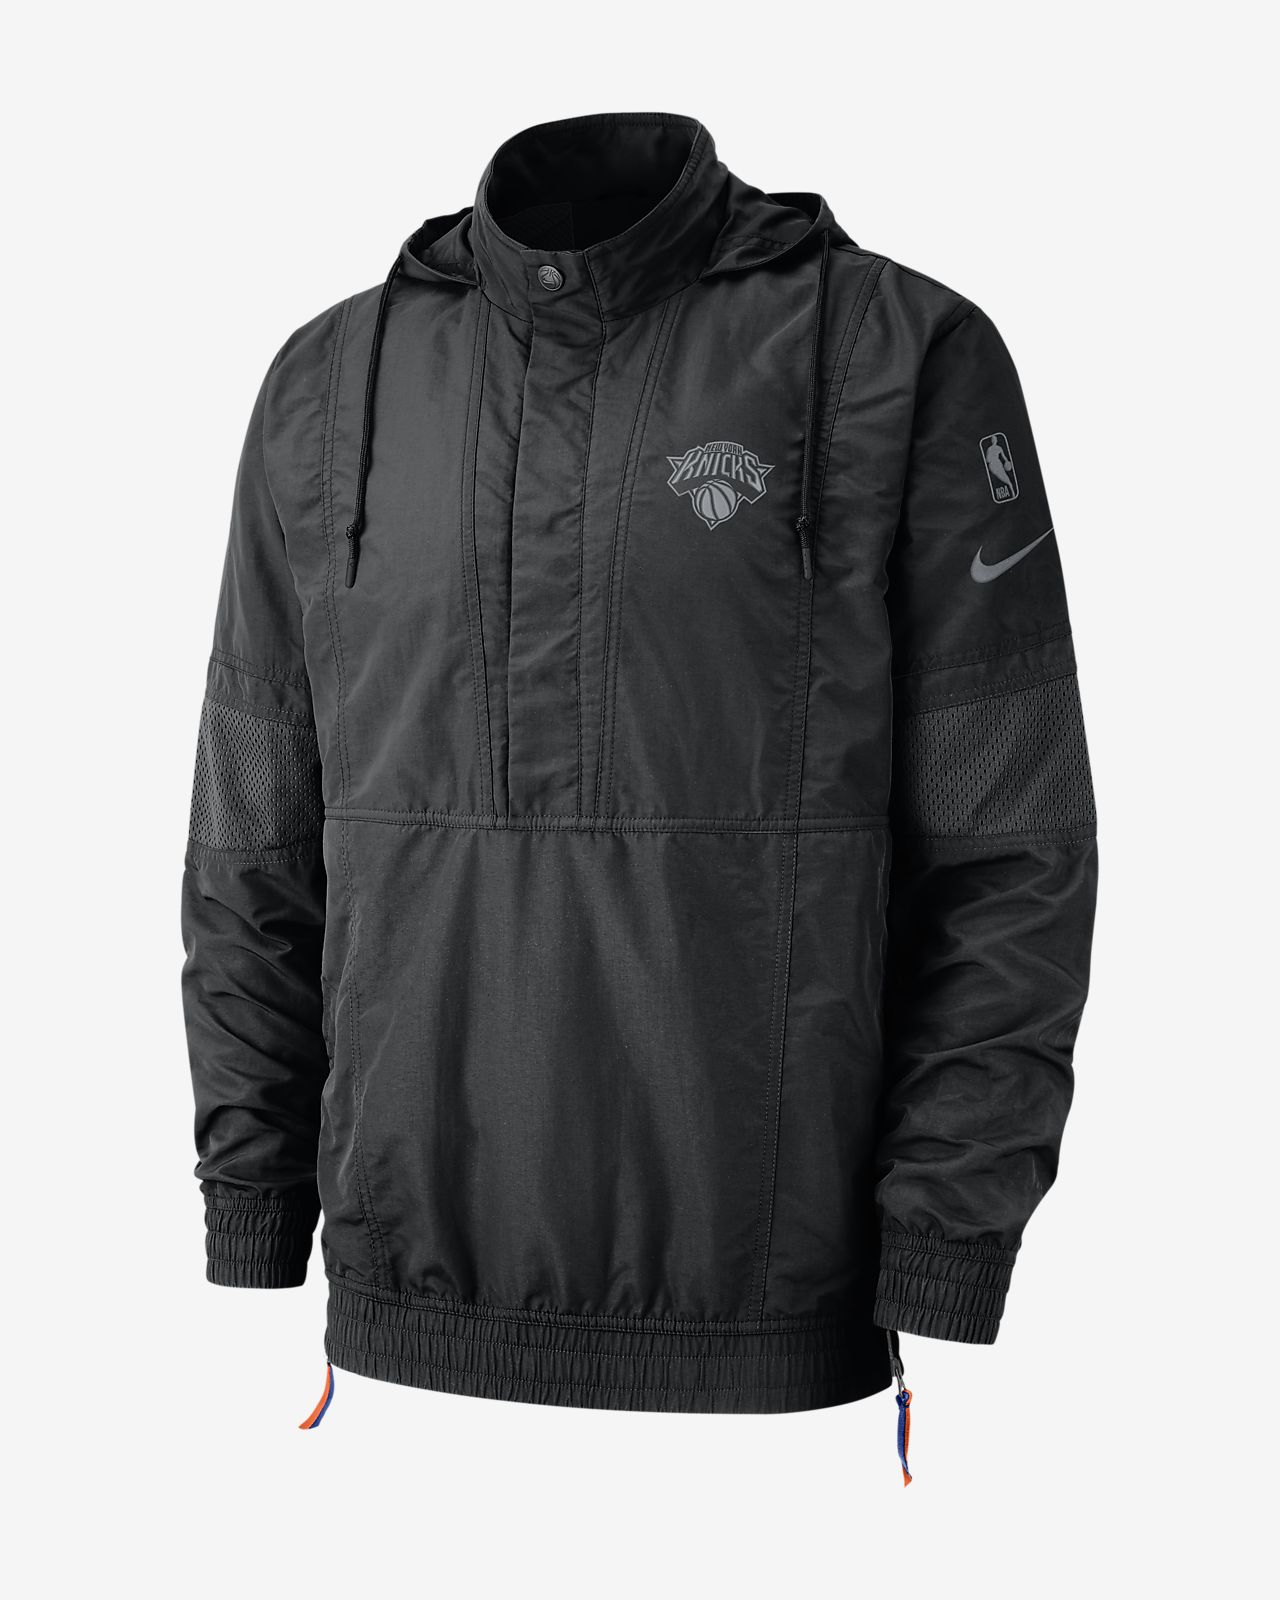 c801454194b9 New York Knicks Nike Courtside Men s Hooded NBA Jacket. Nike.com CA